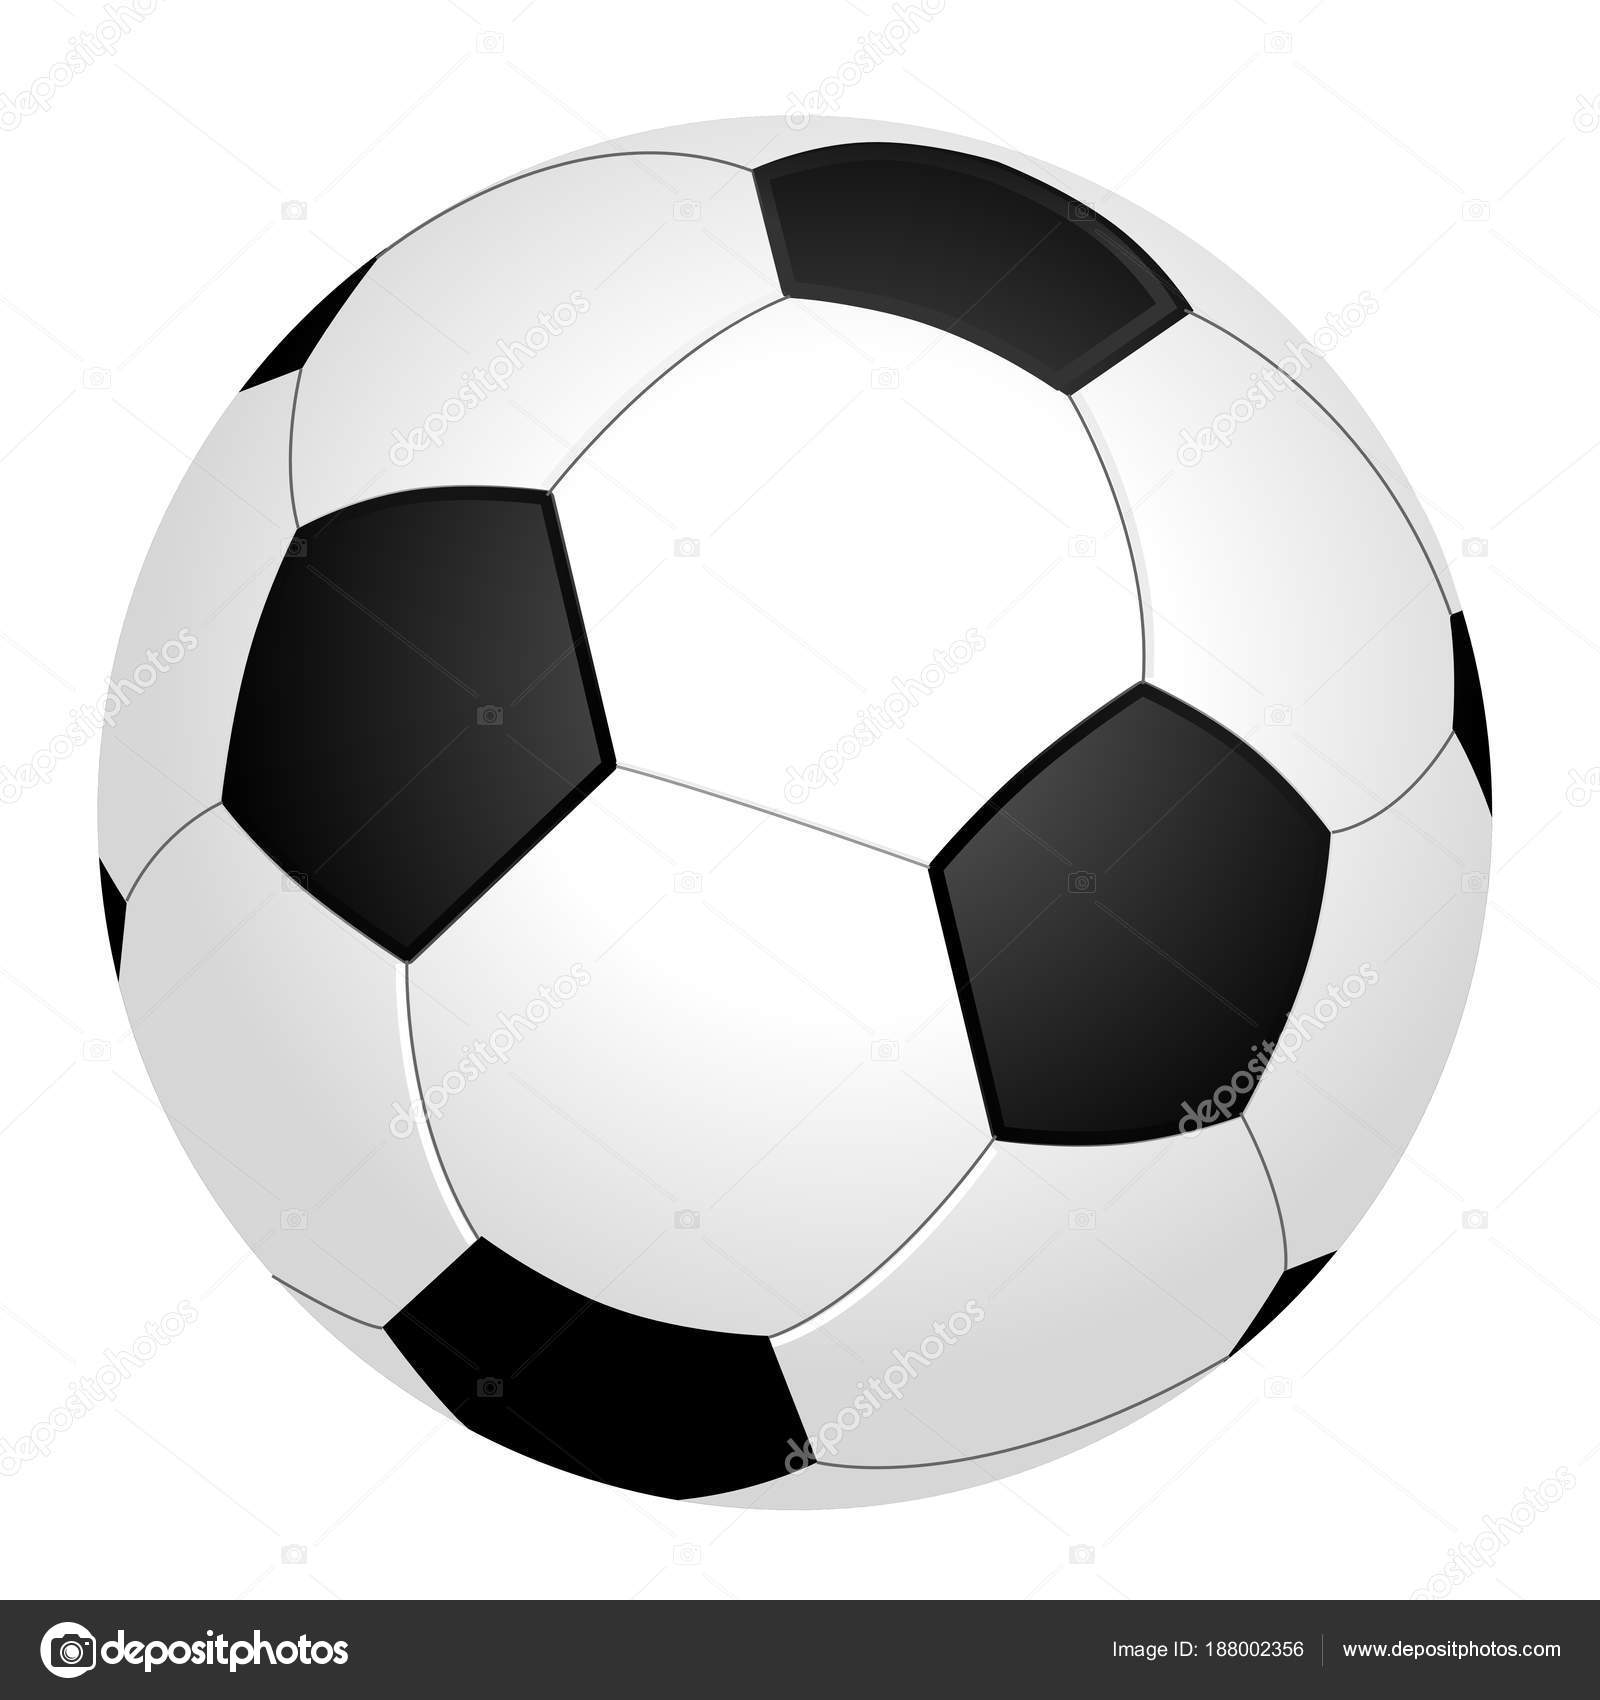 This is a photo of Inventive Bola De Soccer